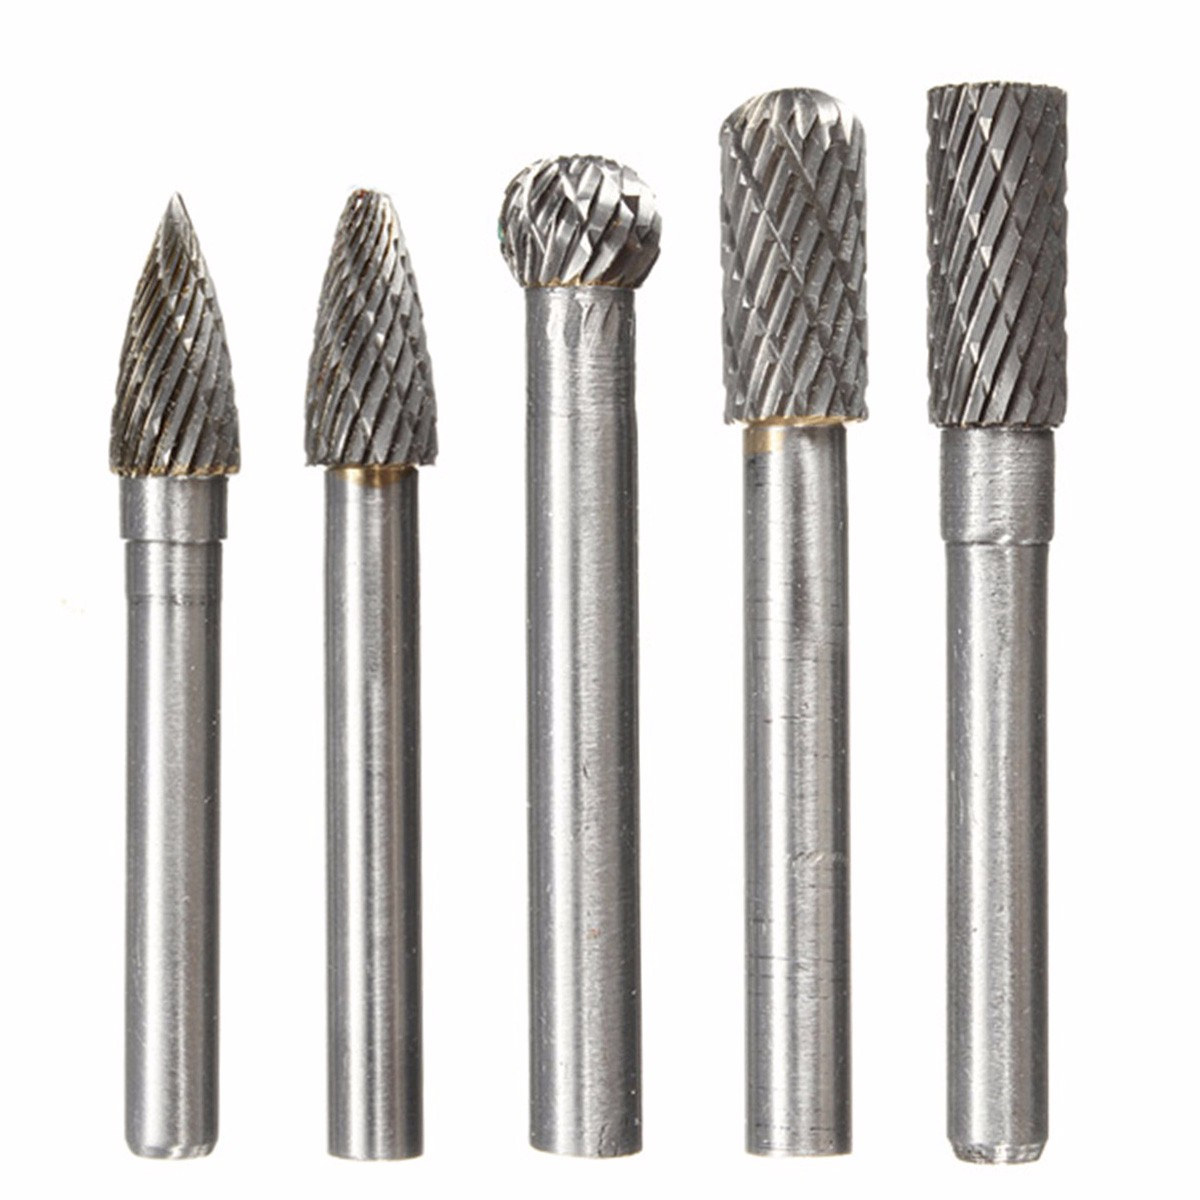 Type A C D F G 6*8MM Head Tungsten Carbide Rotary Tool Point Burr Die Grinder Abrasive Tools Drill Milling Carving Bit Tools